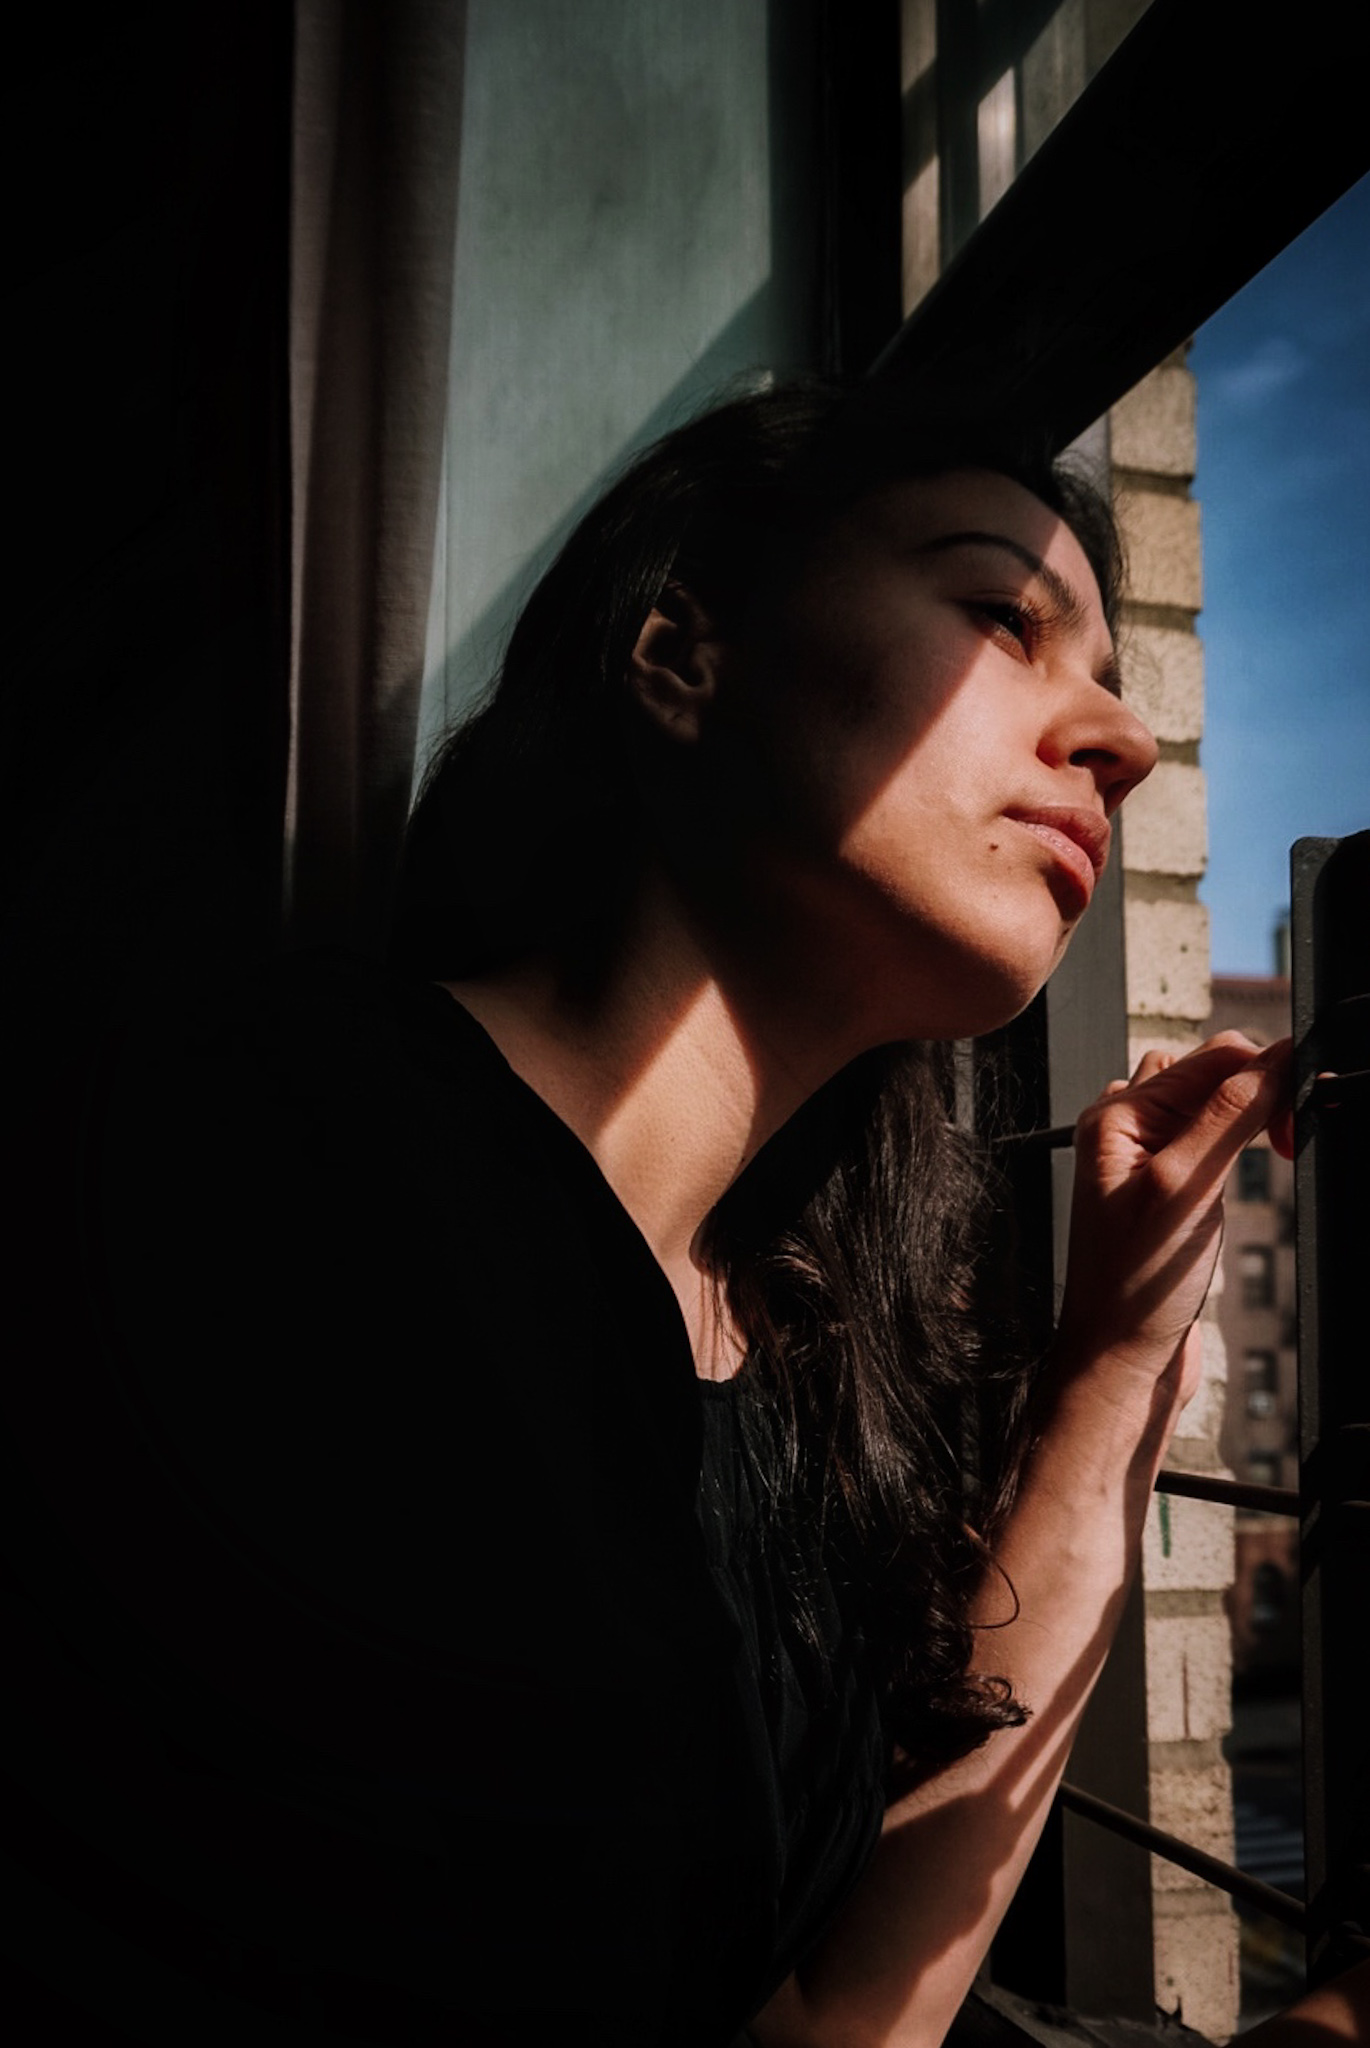 nyc girl looking out from window during covid19